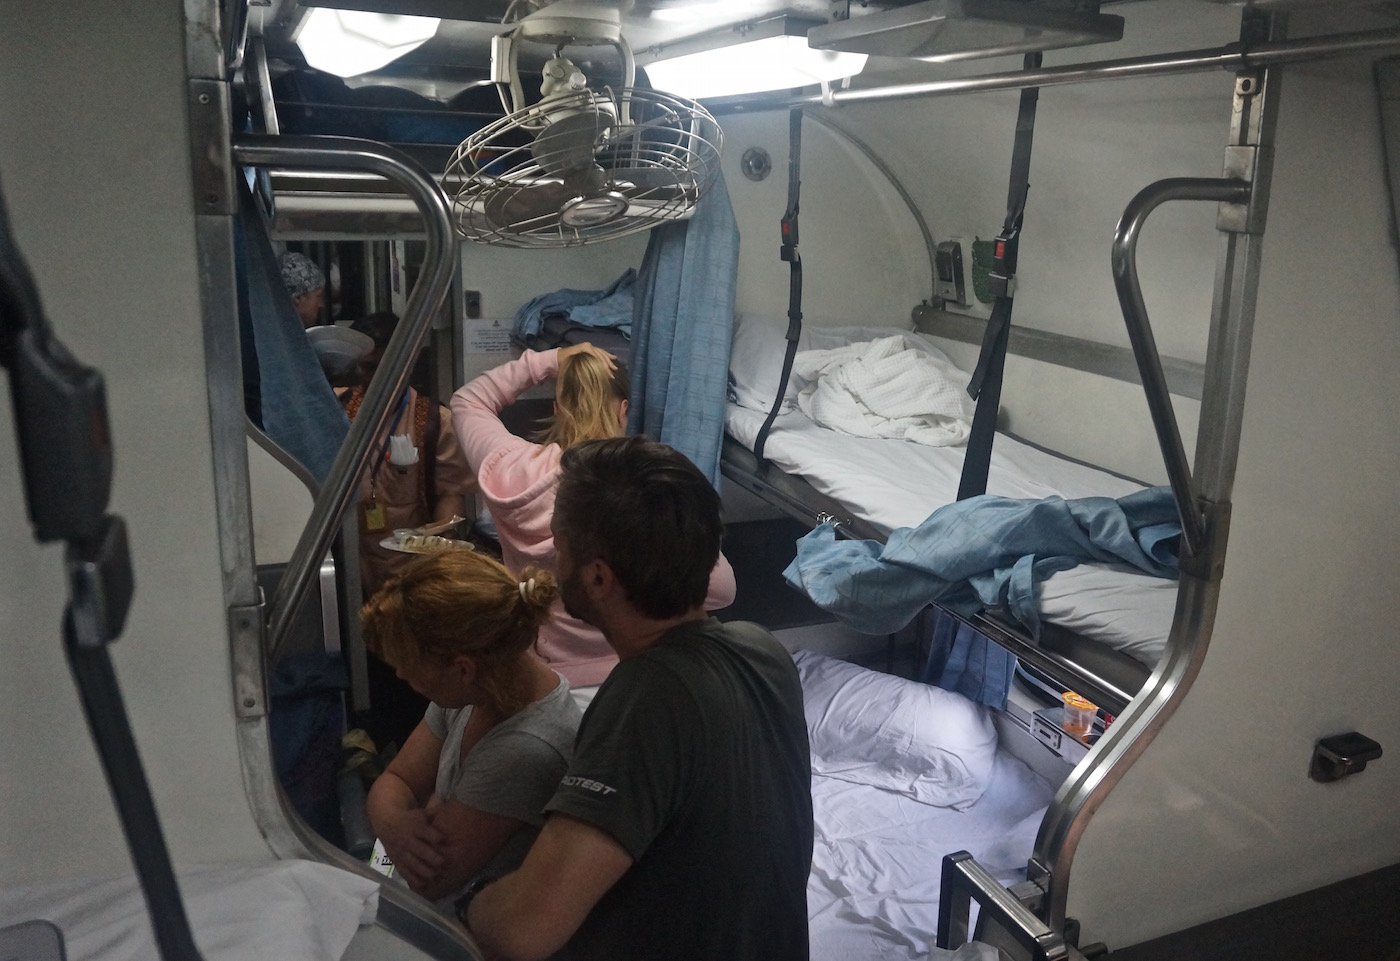 Taking the Train from Bangkok to Chiang Mai - Second Class Beds